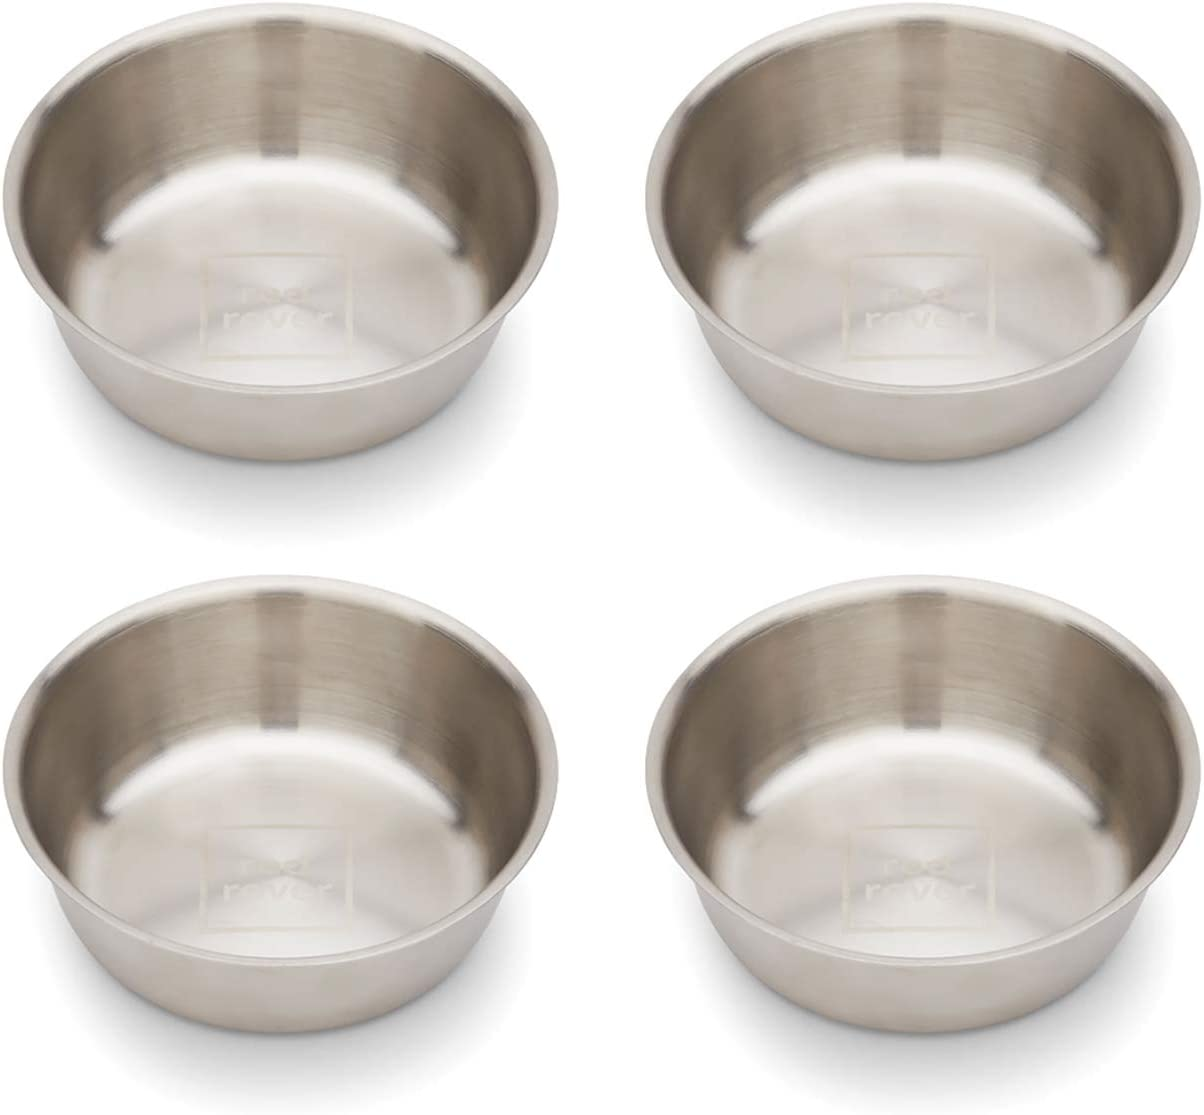 Red Rover Stainless Trust Dallas Mall Steel Kids' Set 4 Bowls of